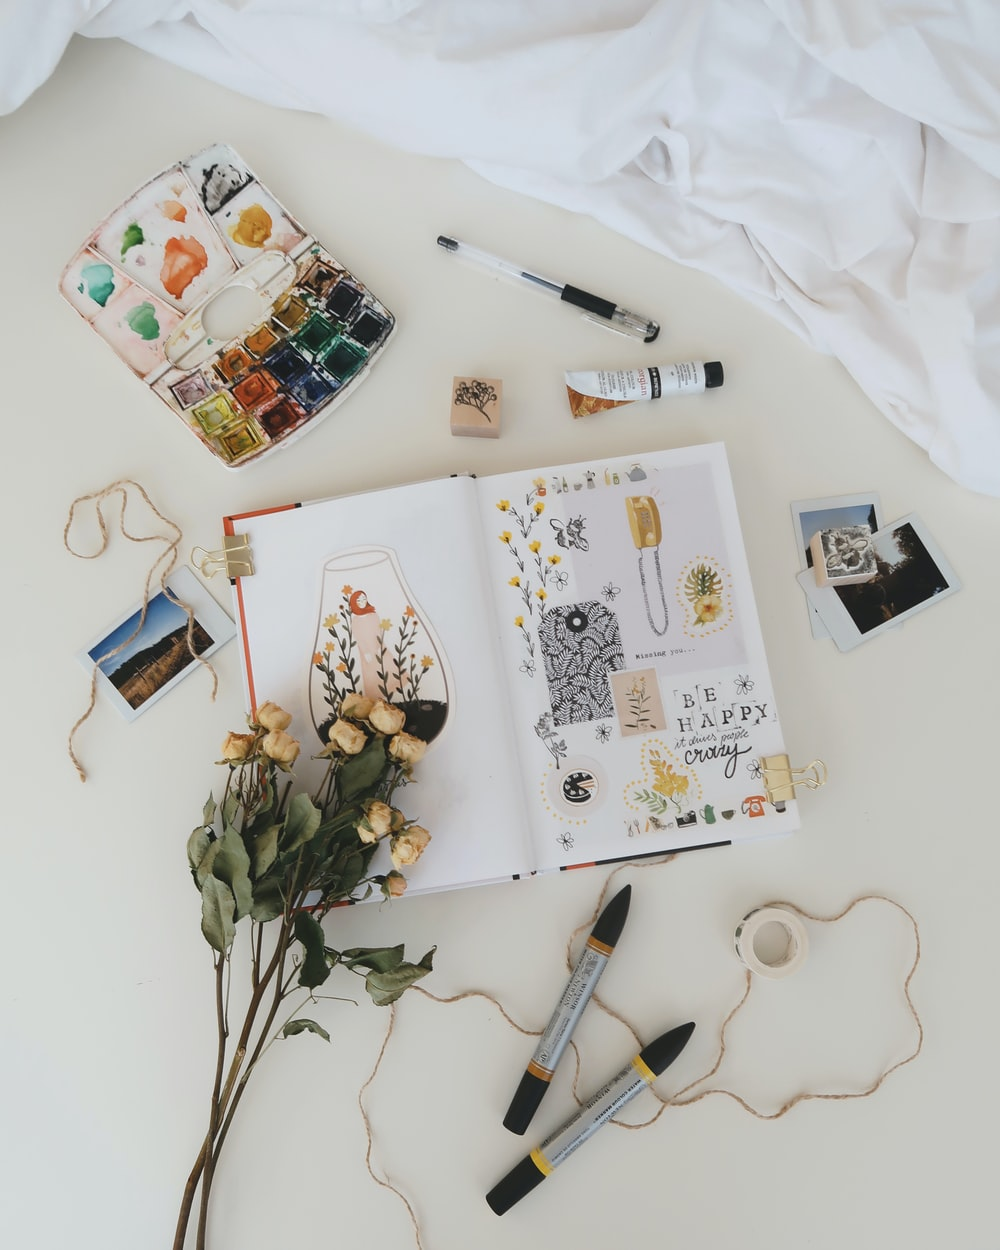 flatlay photography of stuffs on white surface